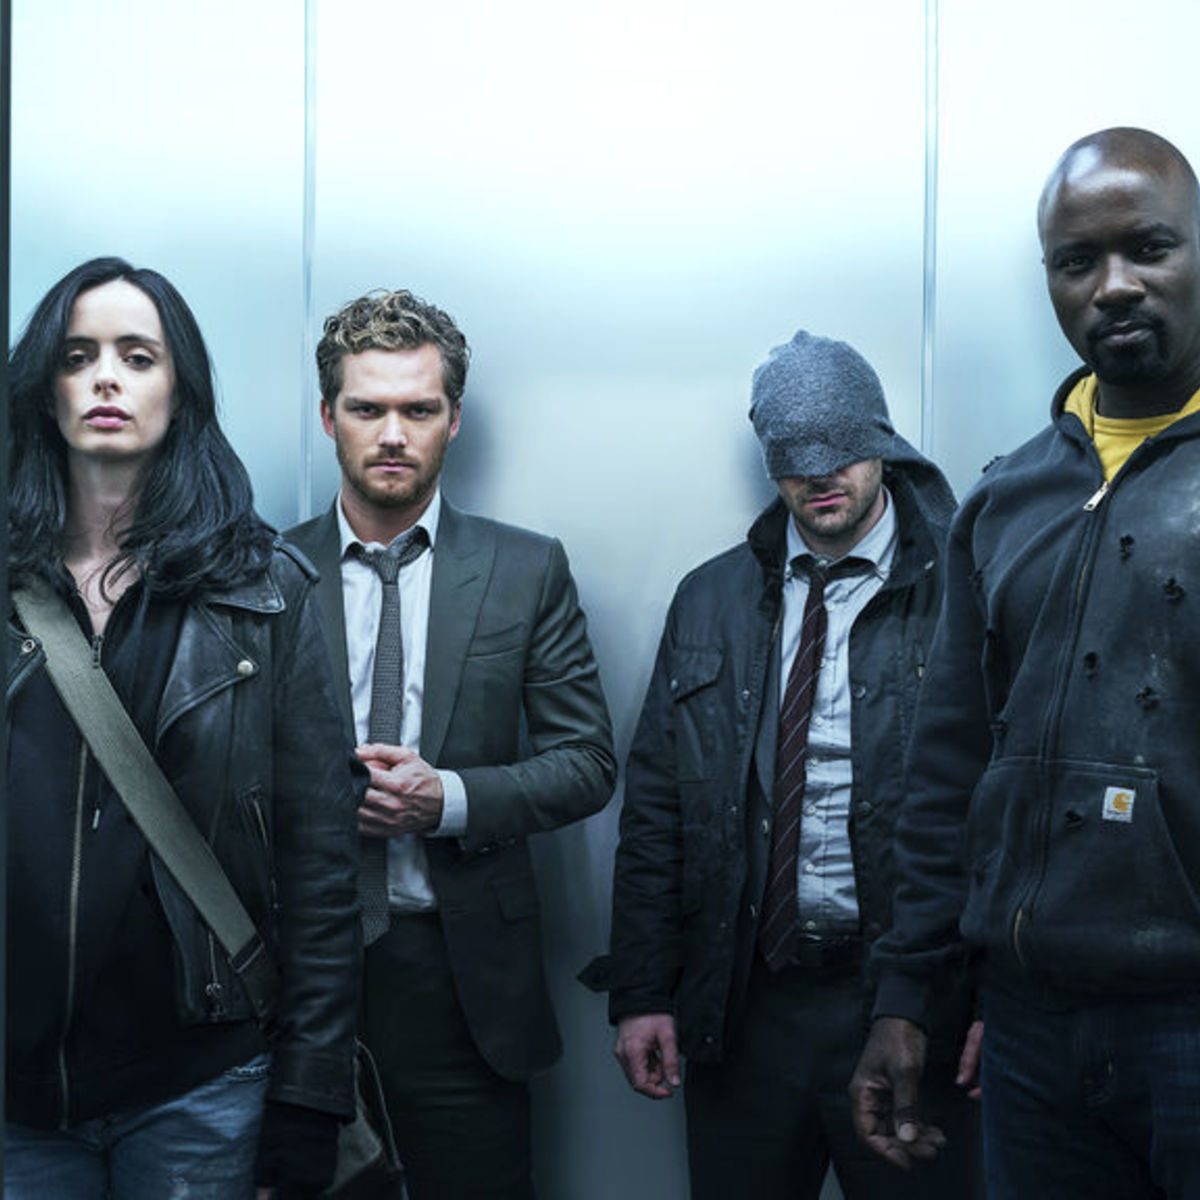 Don\'t expect a second season of Defenders anytime soon, says Jeph Loeb